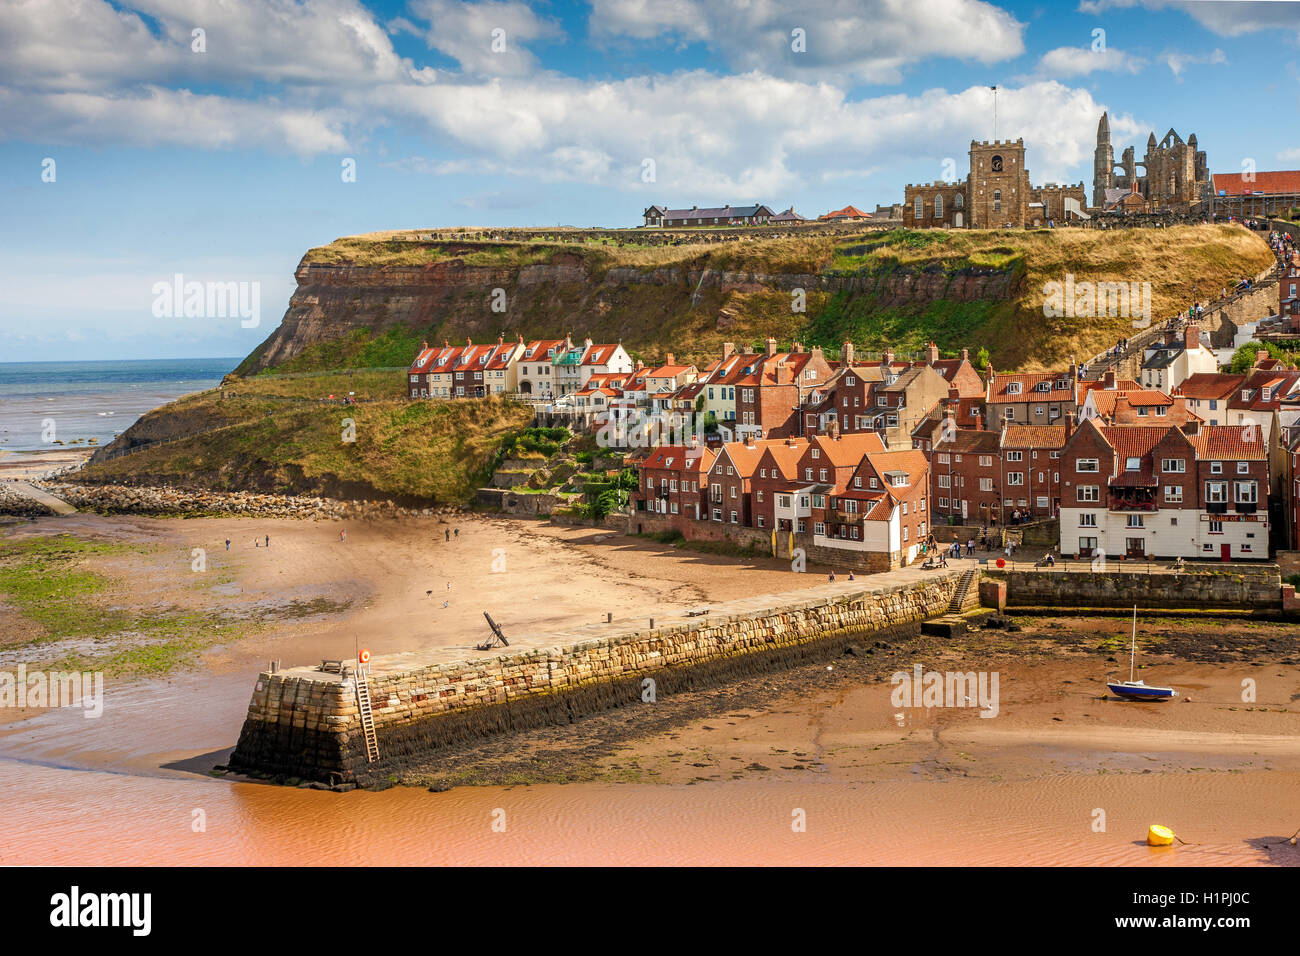 Whitby harbour, Yorkshire, N/E England. - Stock Image